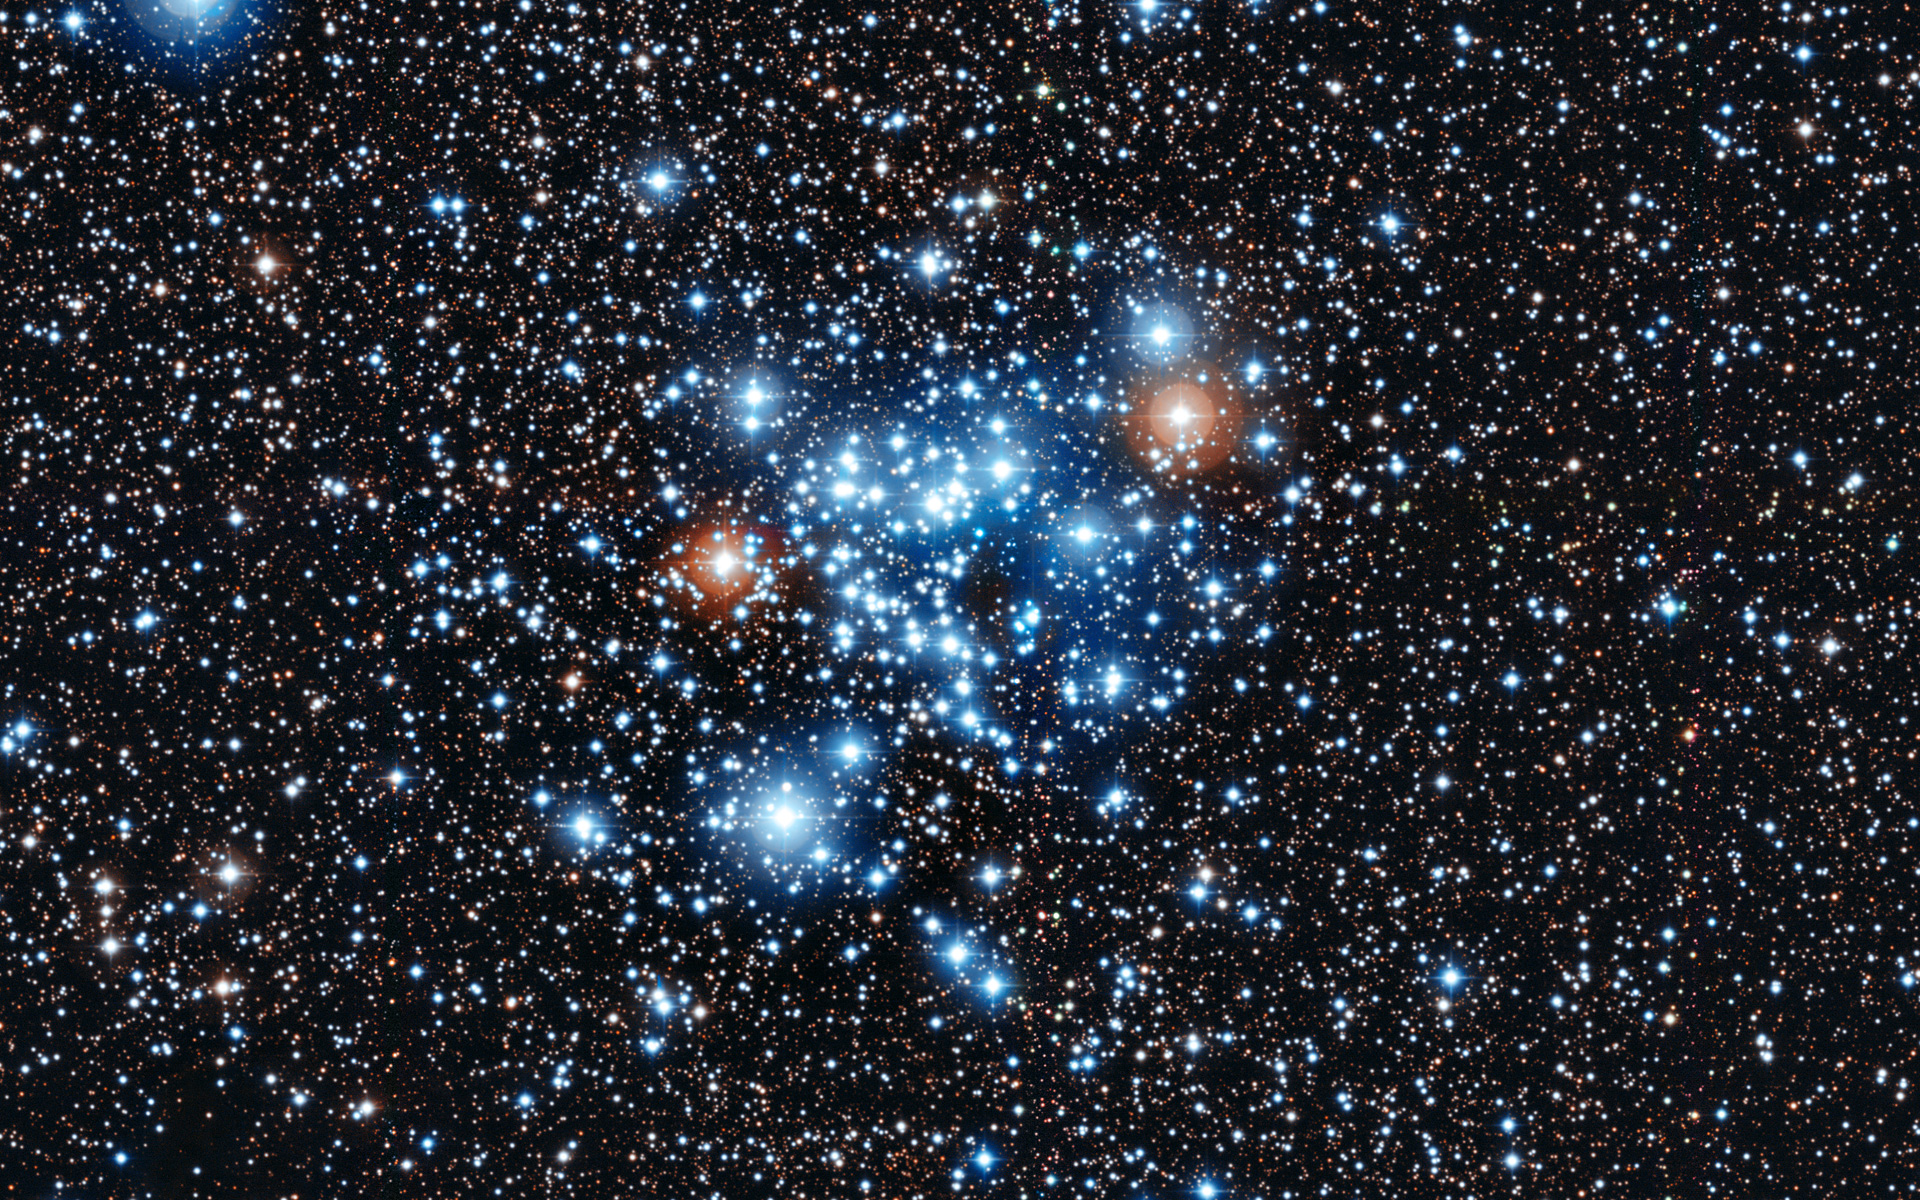 1920x1200 - Star Cluster Wallpapers 8